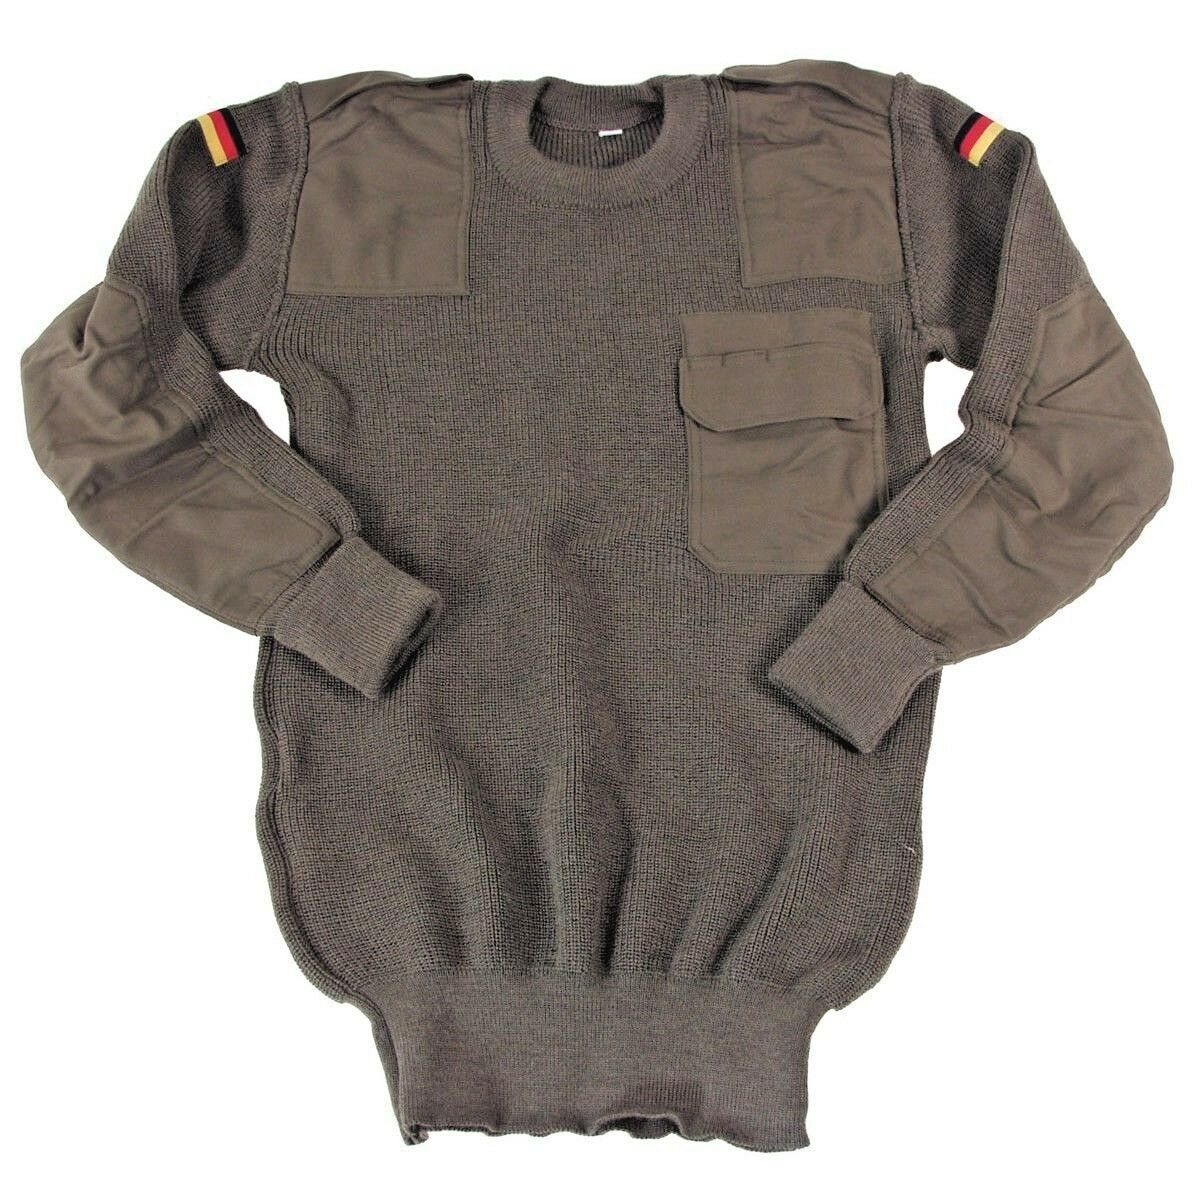 BW Pullover oliv Original Bundeswehr 46 - 56 Army Armeepullover Army 56 Winter Pullover 76f4b9